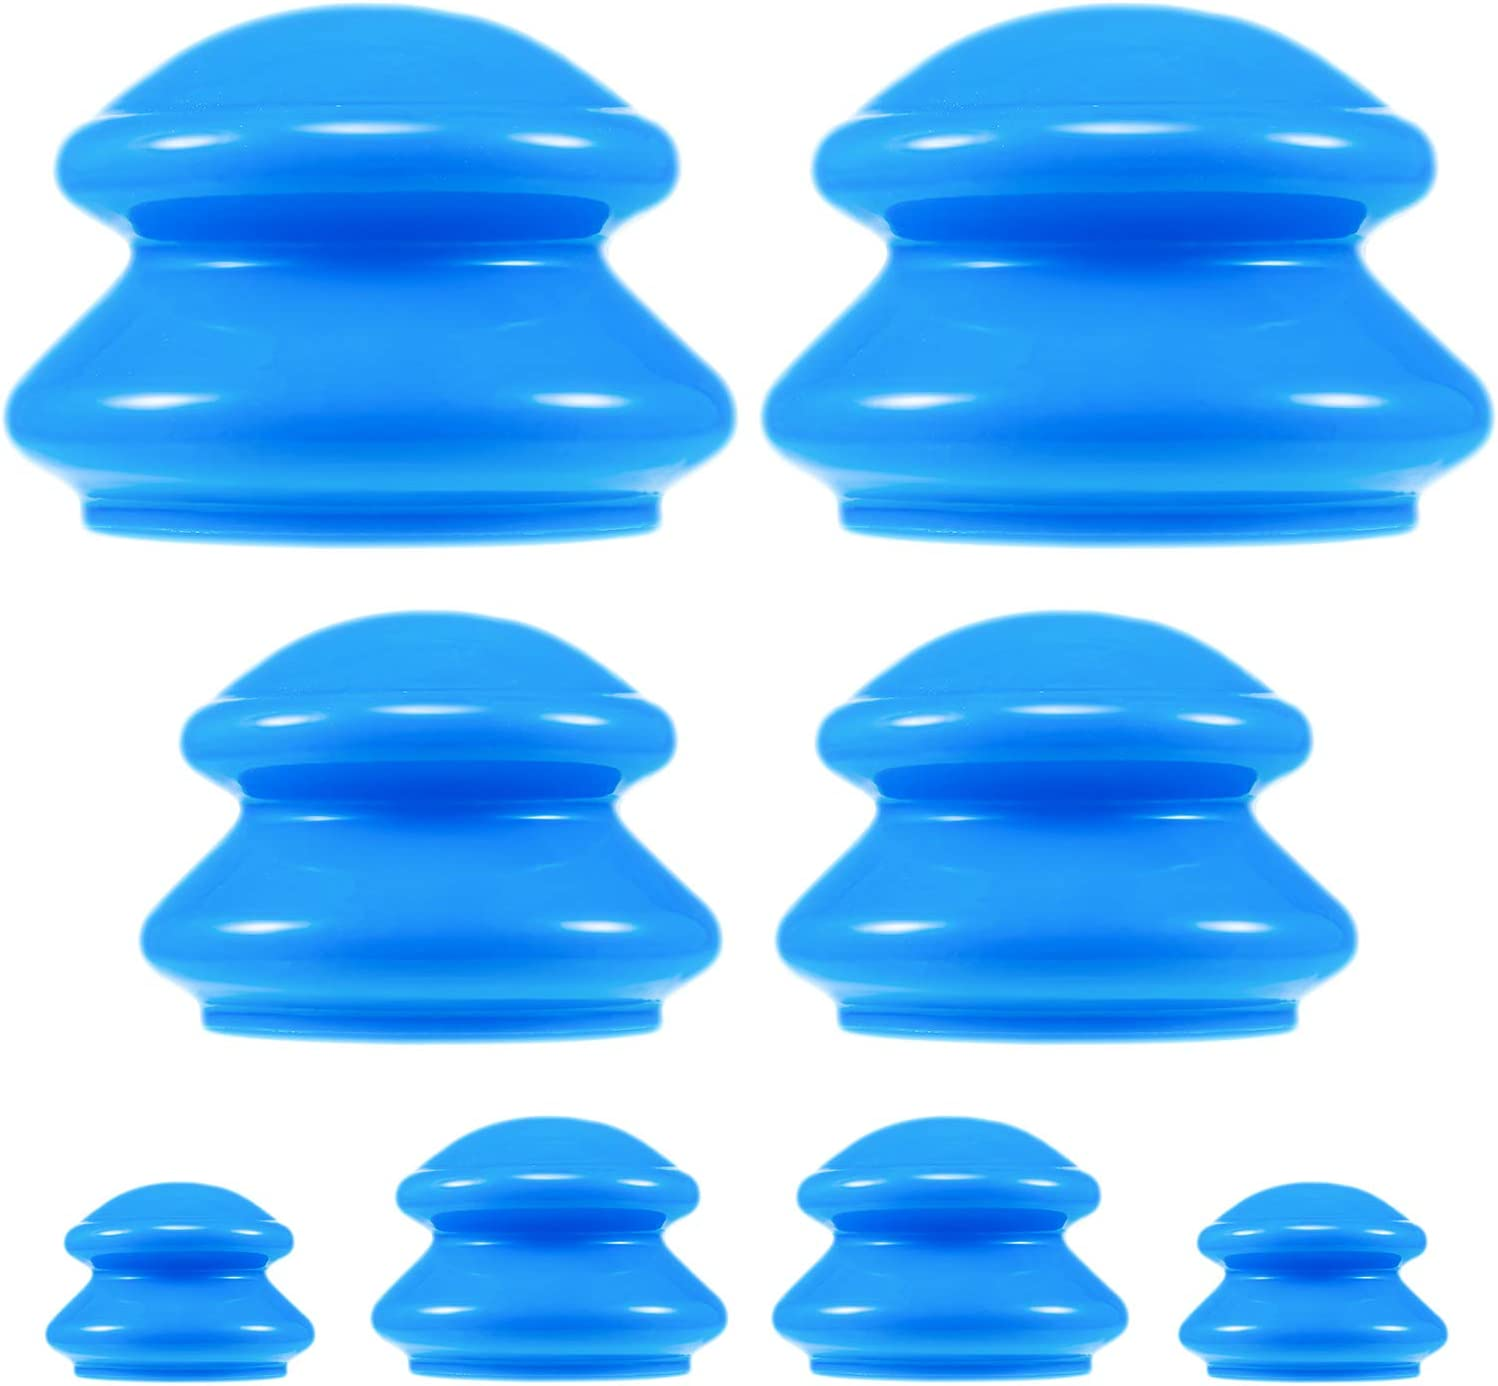 8 Limited price Pieces Silicone Finally popular brand Cupping Set Massage Vacuu Cups 4 Size